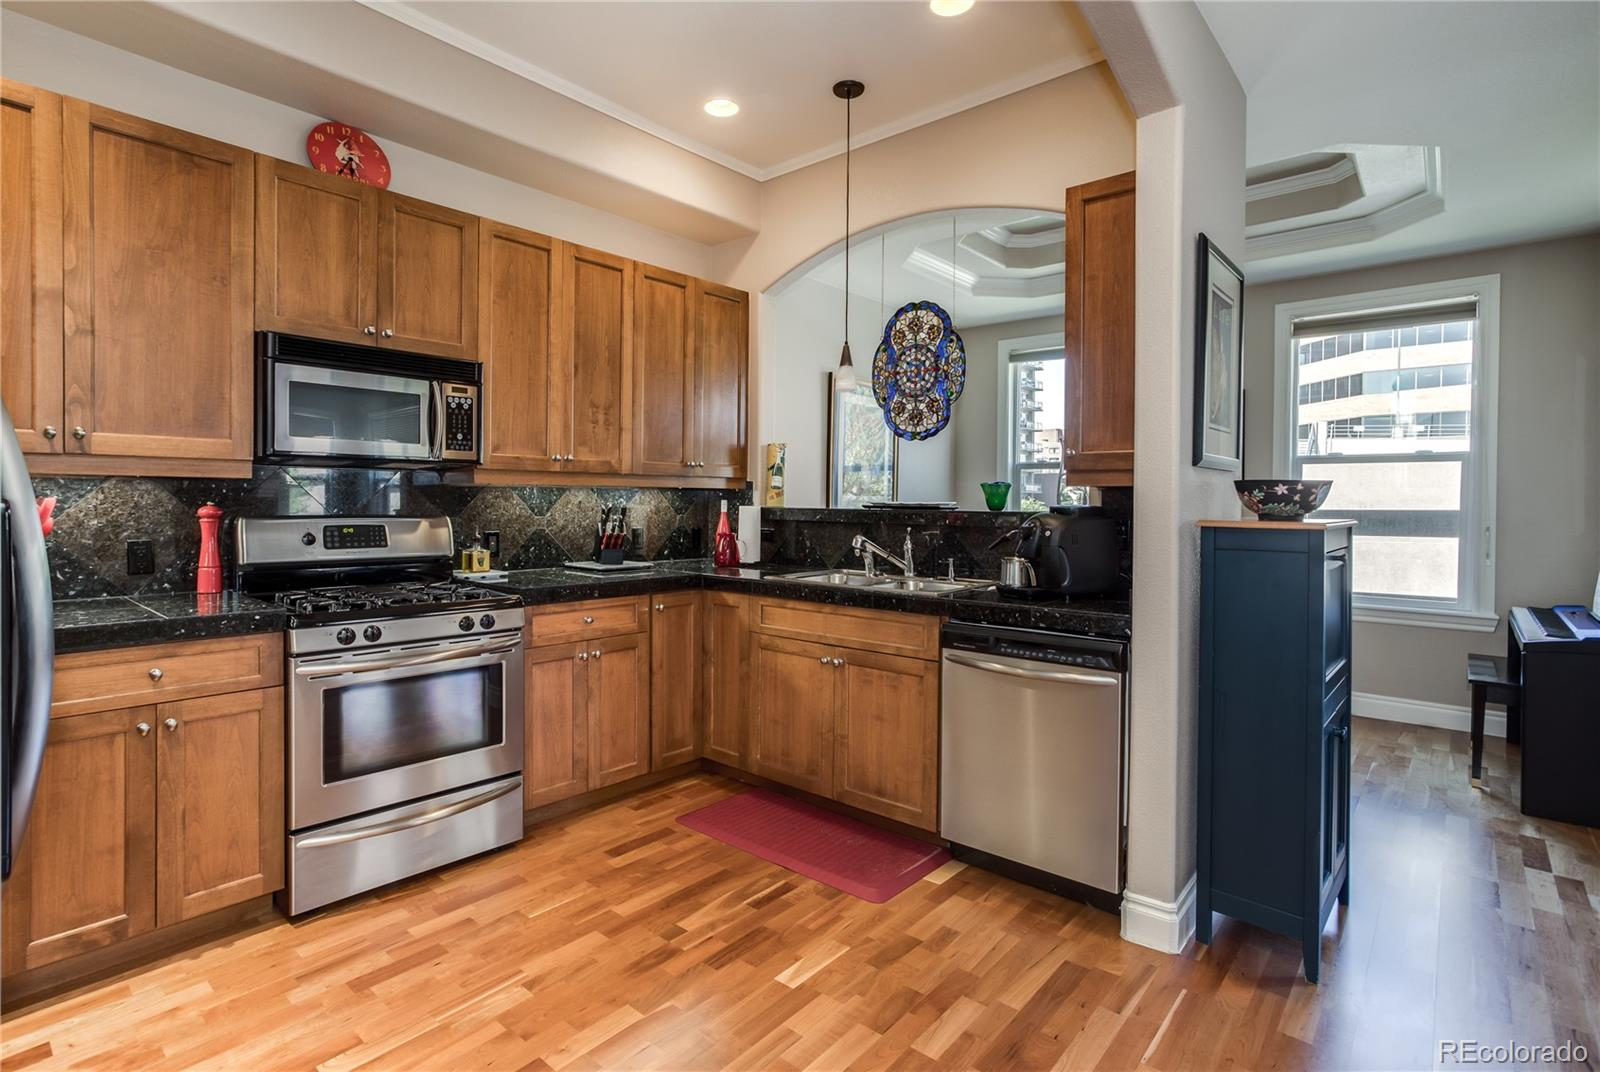 MLS# 3445243 - 6 - 40 Madison Street #303, Denver, CO 80206